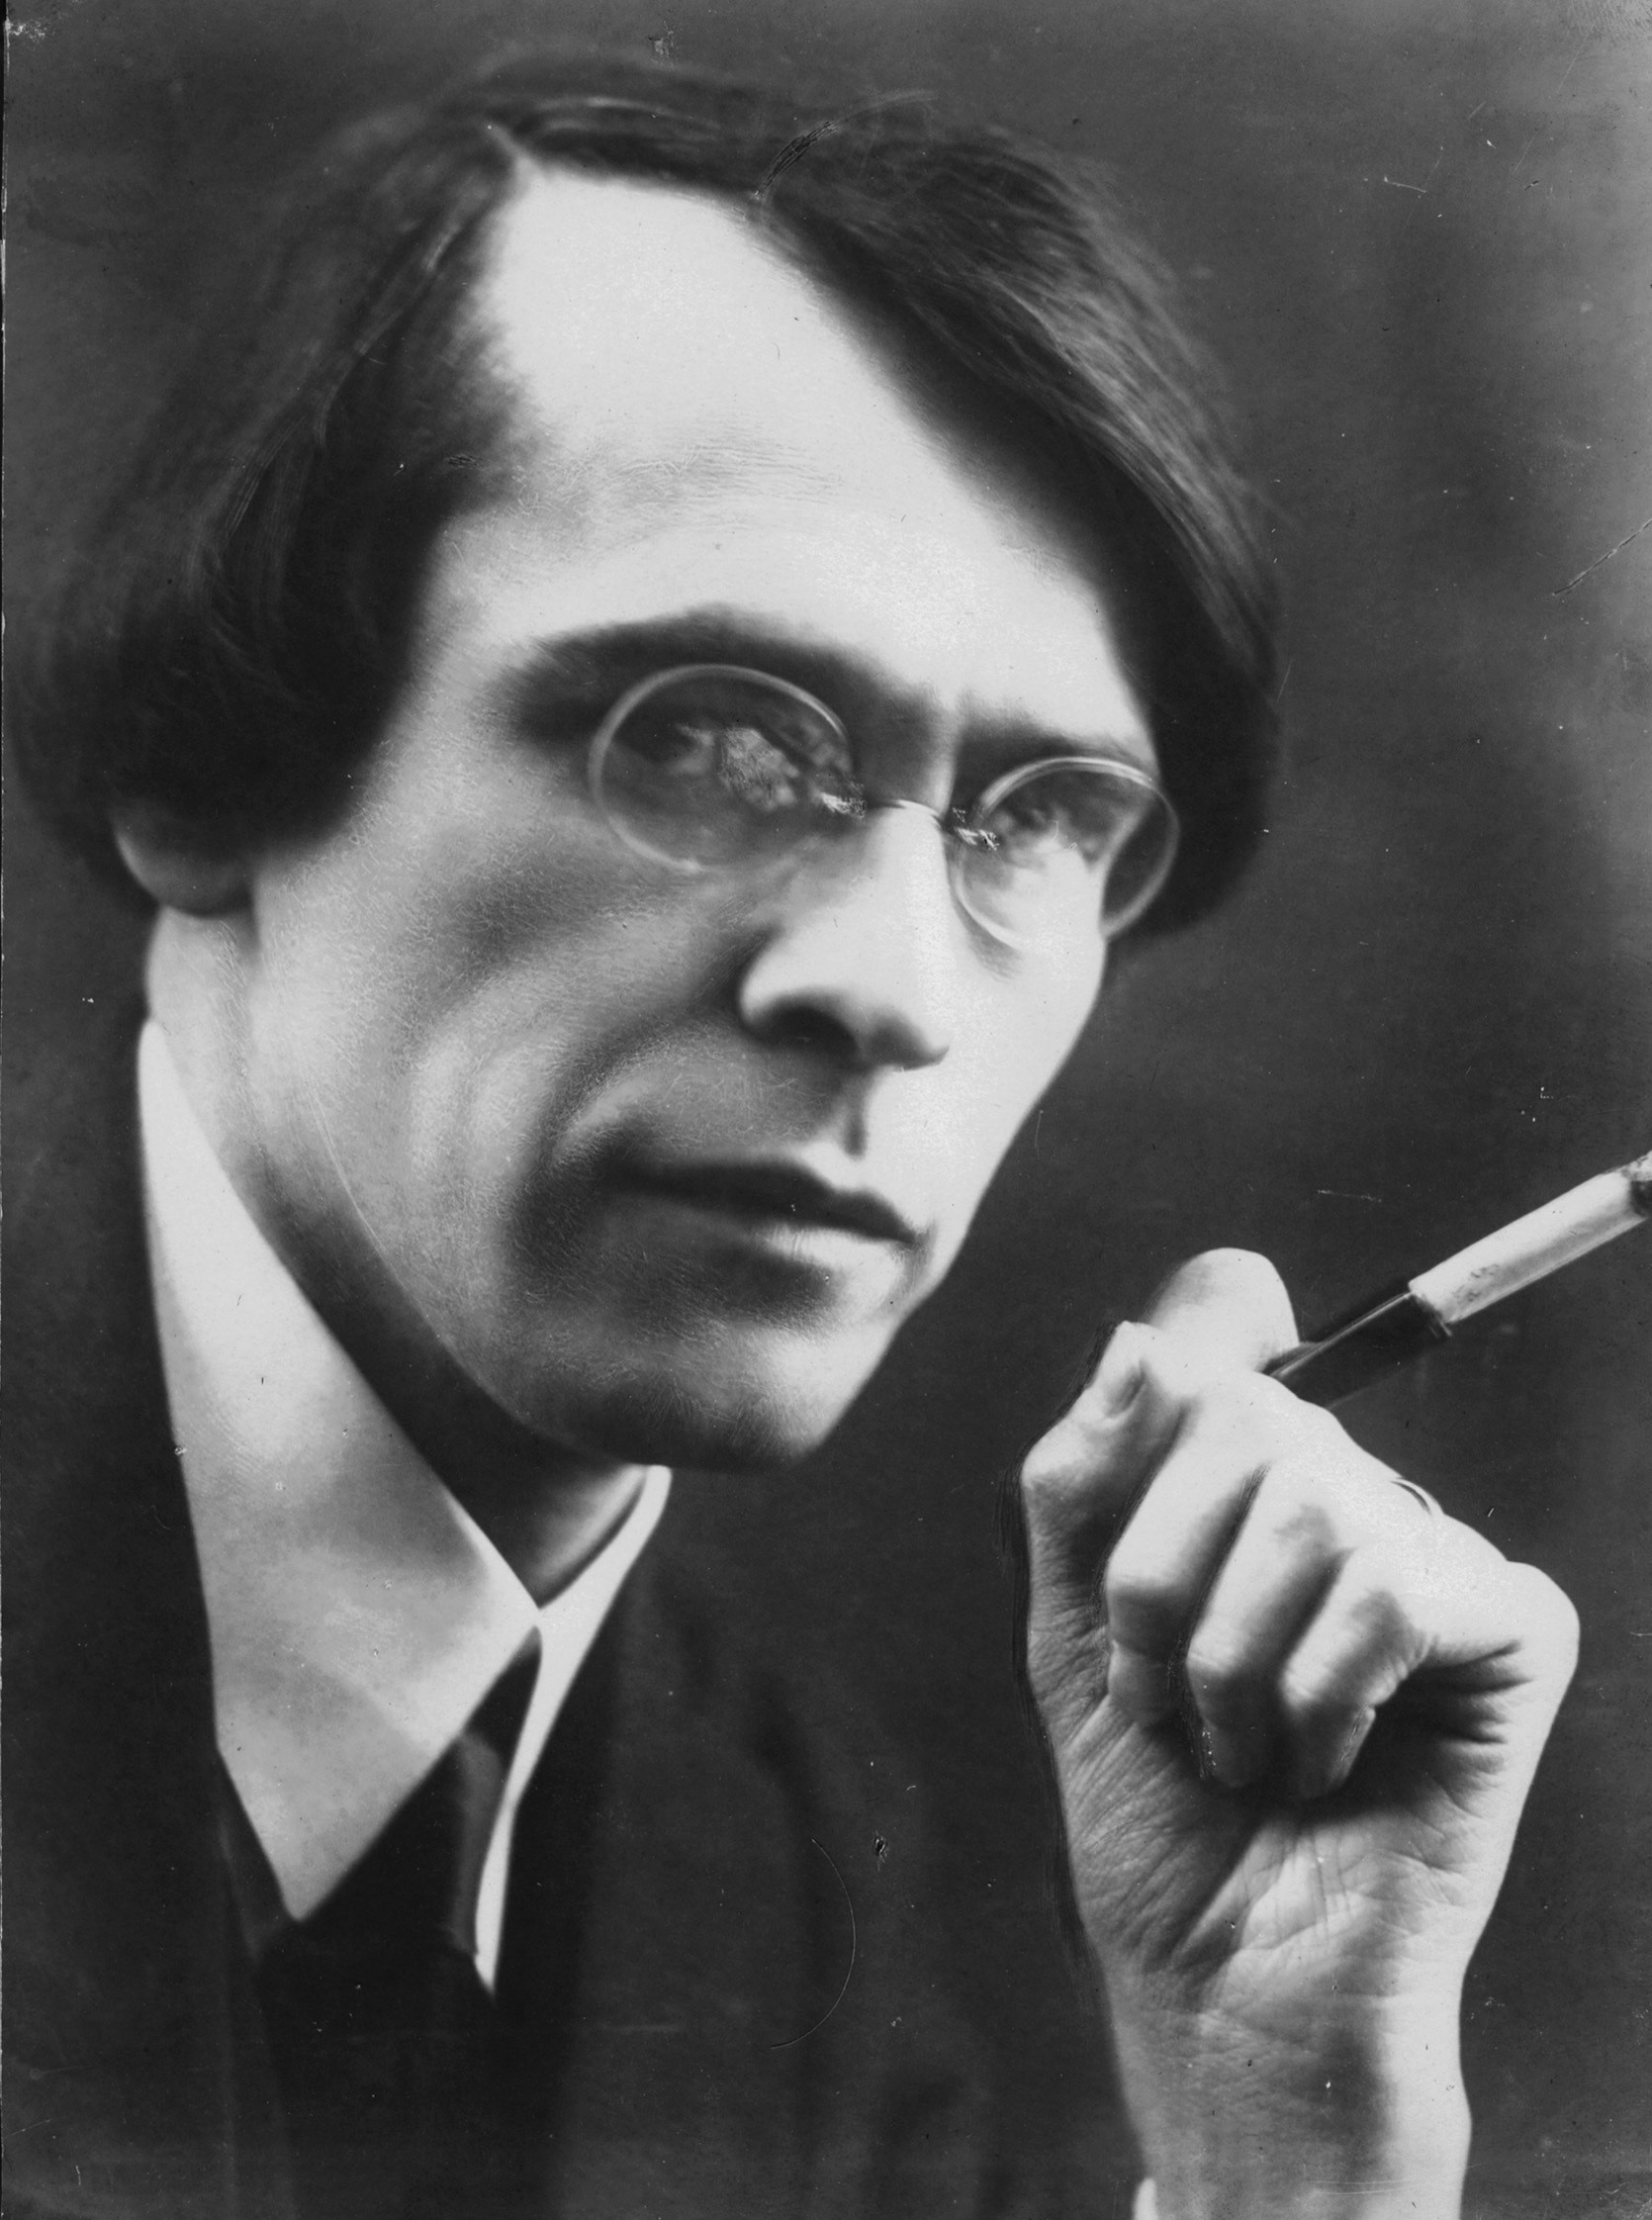 Vladislav Khodasevich is widely recognized as one of the foremost Russian poets of the 20th century.